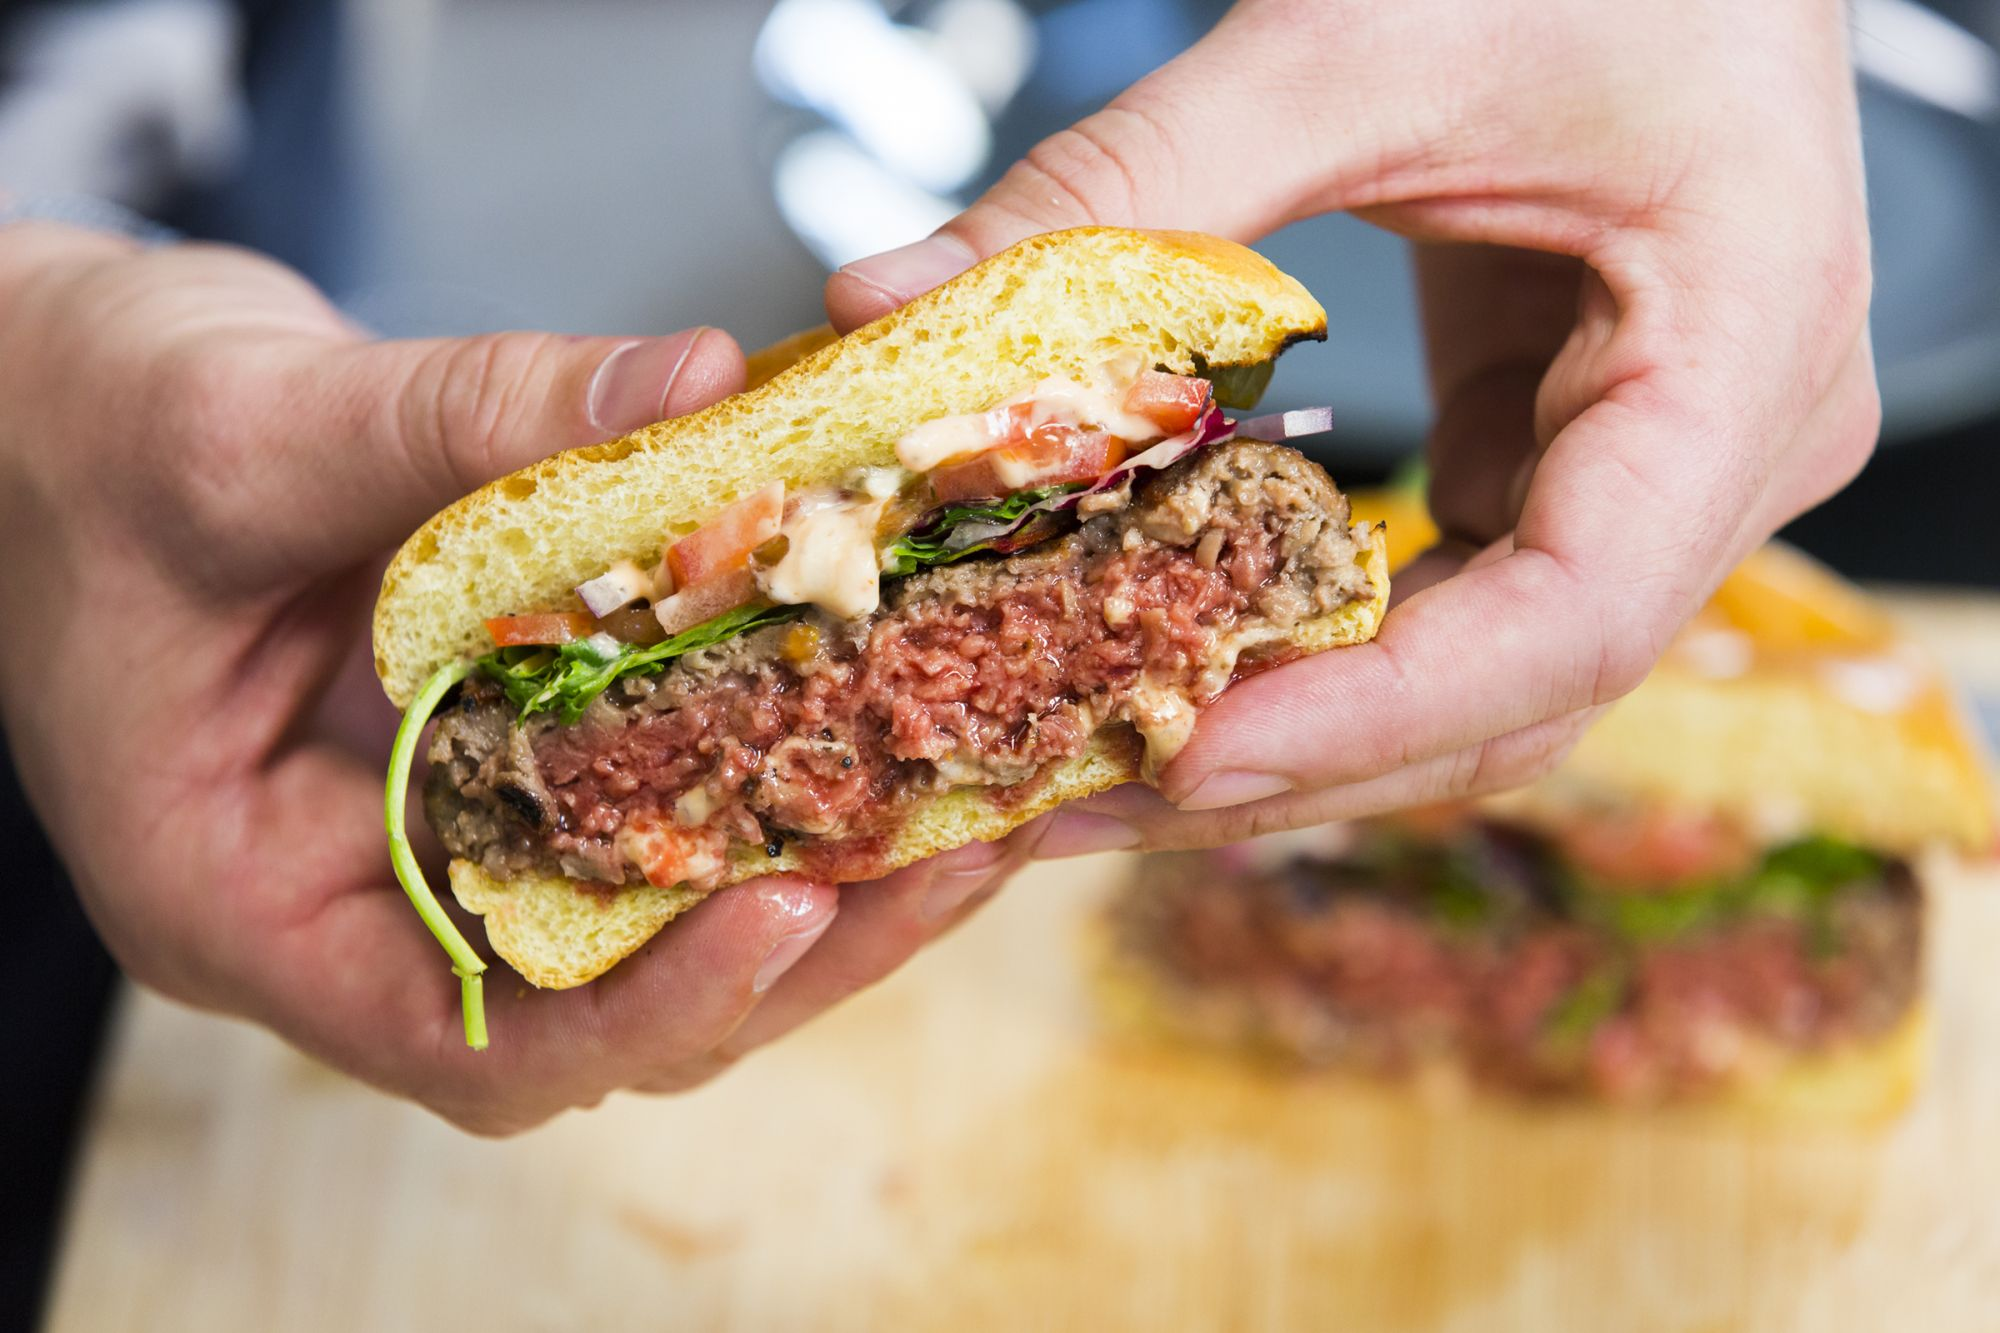 Impossible Foods Raises Another $300 Million to Boost Production of its Bleeding Plant-Based Burger